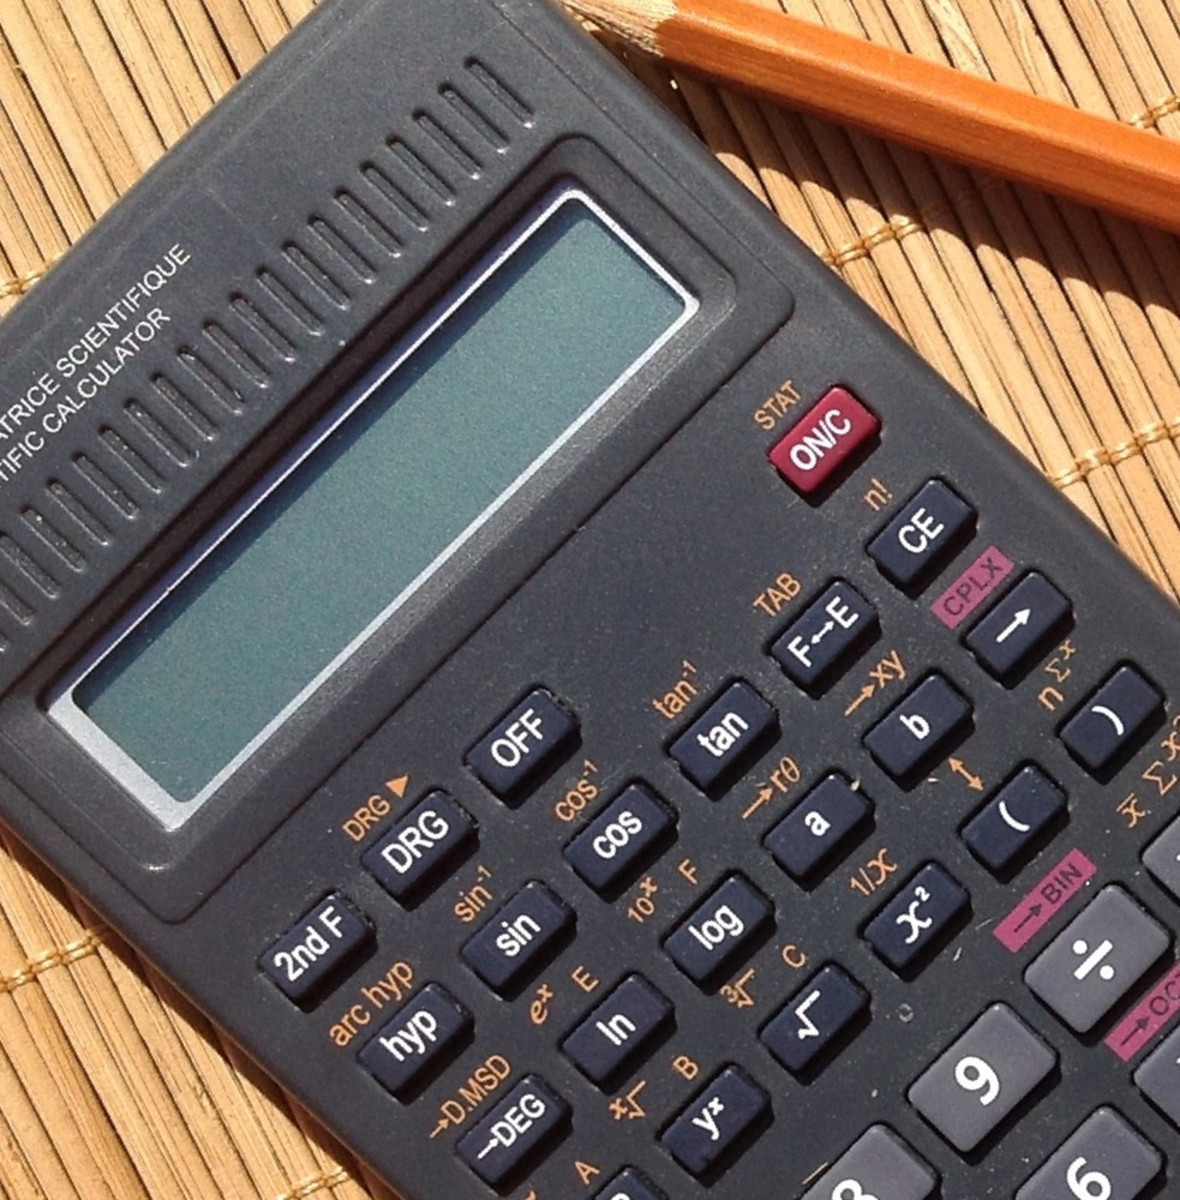 A calculator and a pencil are essential tools for passing a physics exam.